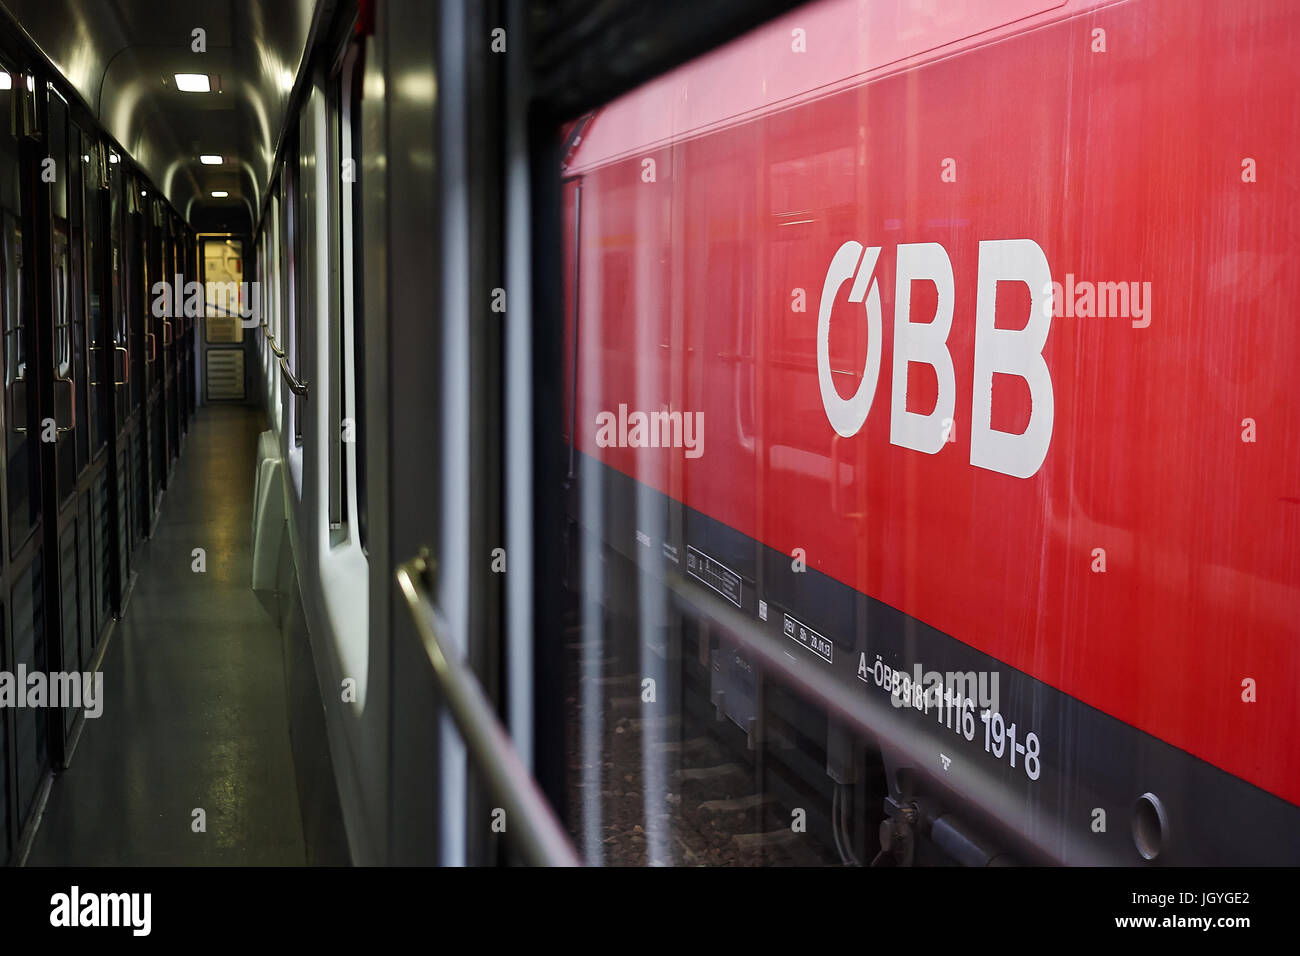 OBB, the logo of the Austrian Federal Railways, on the side of a train seen from another train. - Stock Image